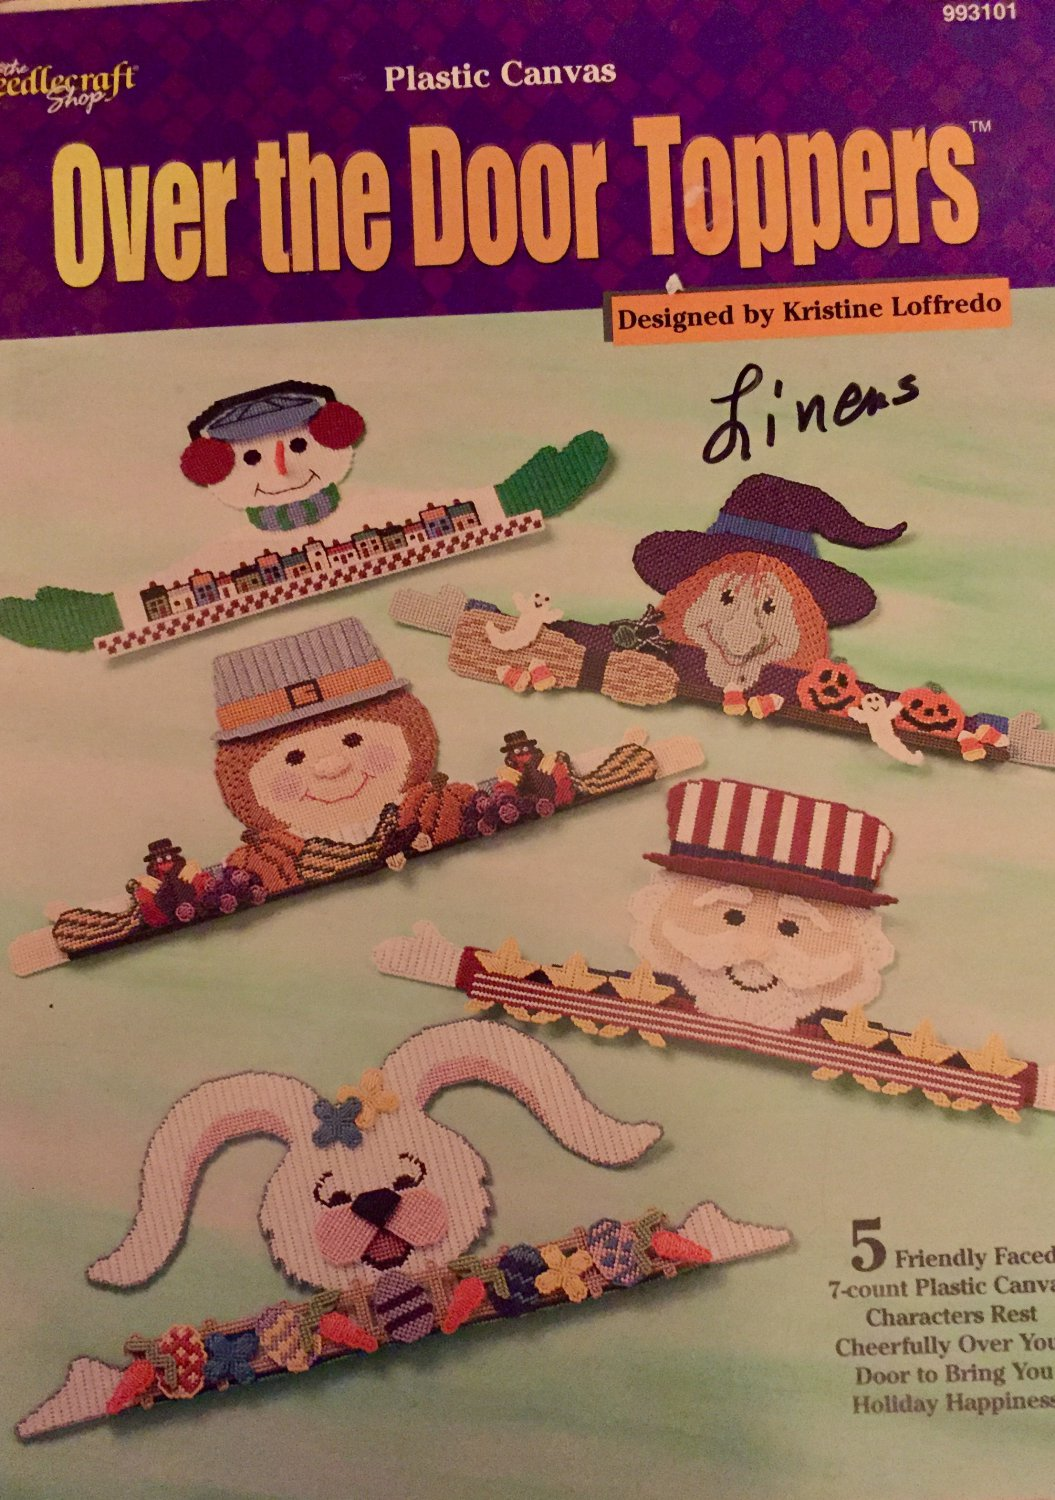 Over the Door Toppers  Plastic Canvas Pattern The Needlecraft Shop 993101